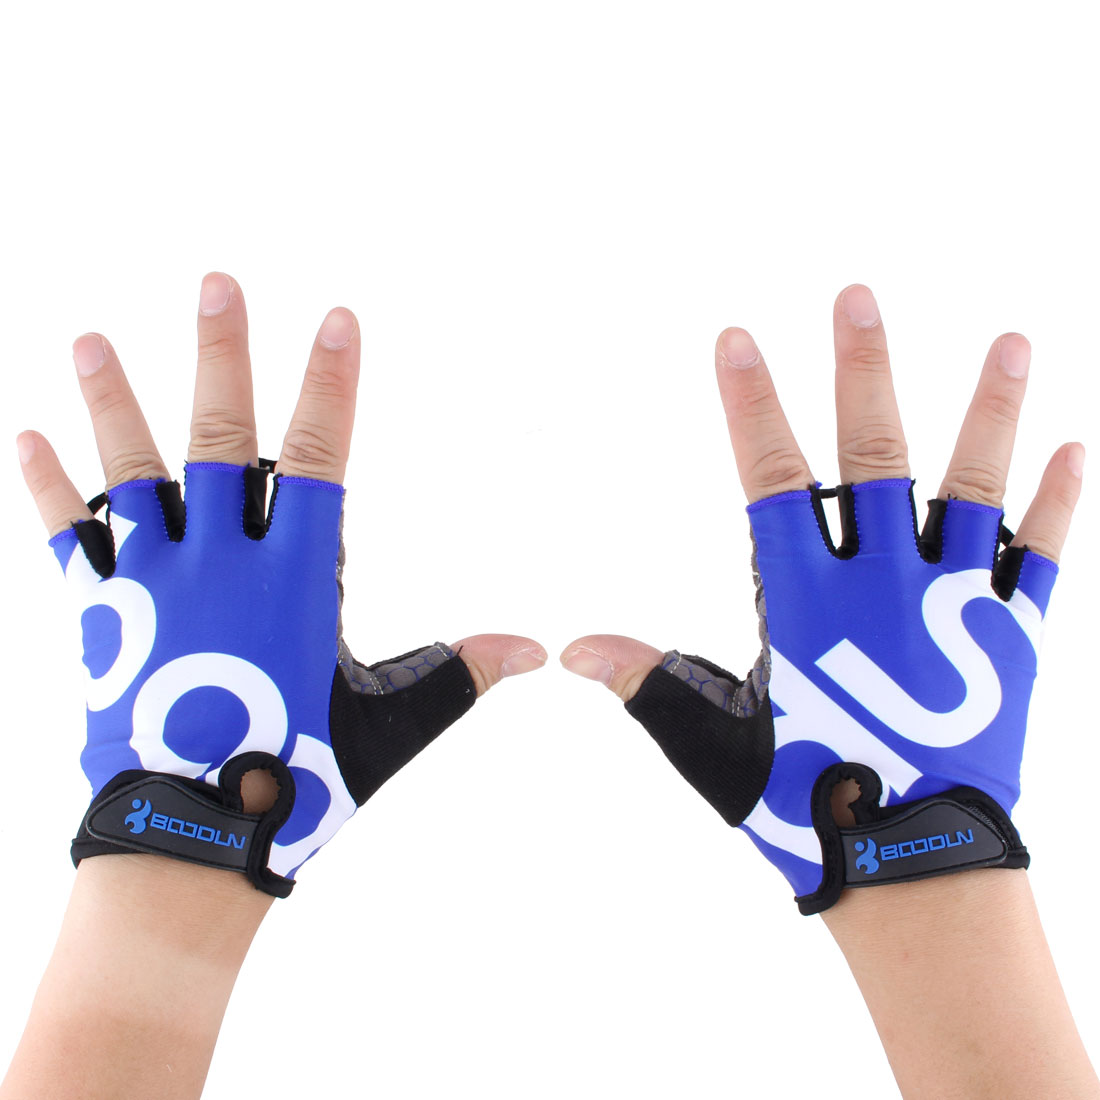 BOODUN Authorized Unisex Outdoor Sports Cycling Biking Exercise Adjustable Fitness Half Finger Gloves Blue XXL Size Pair